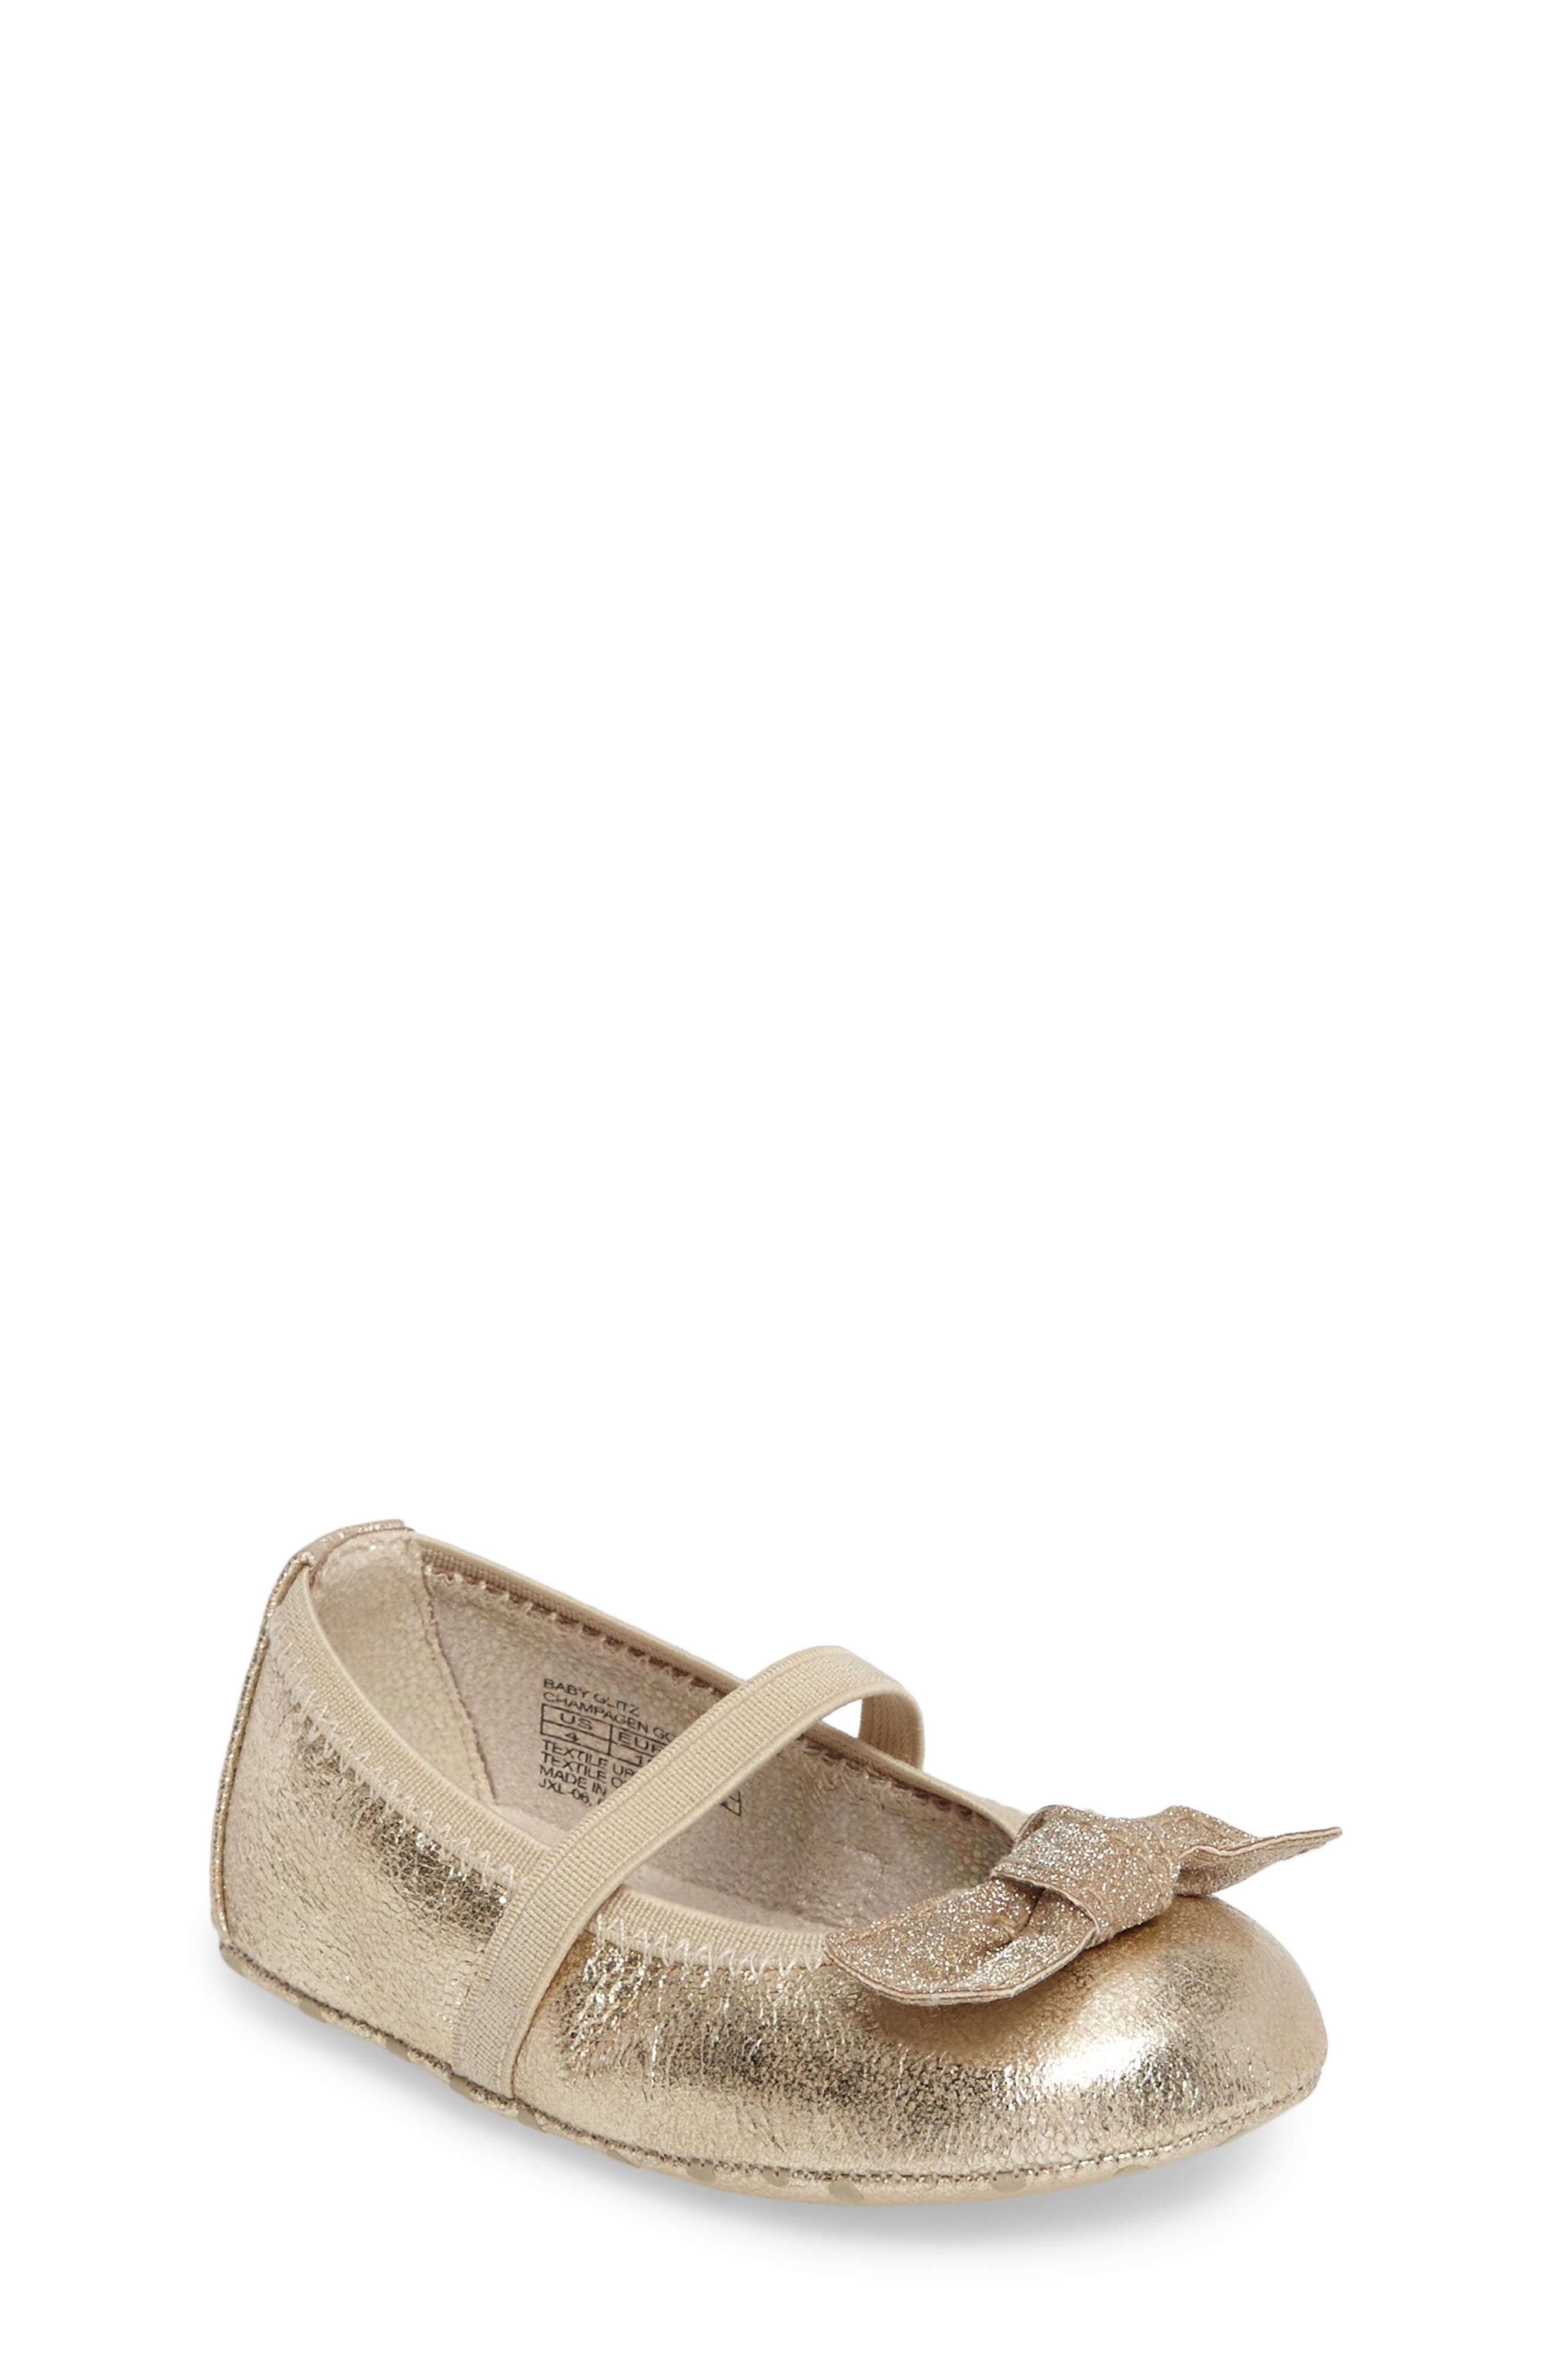 Fannie Glitz Mary Jane,                         Main,                         color, Champagne Gold Faux Leather